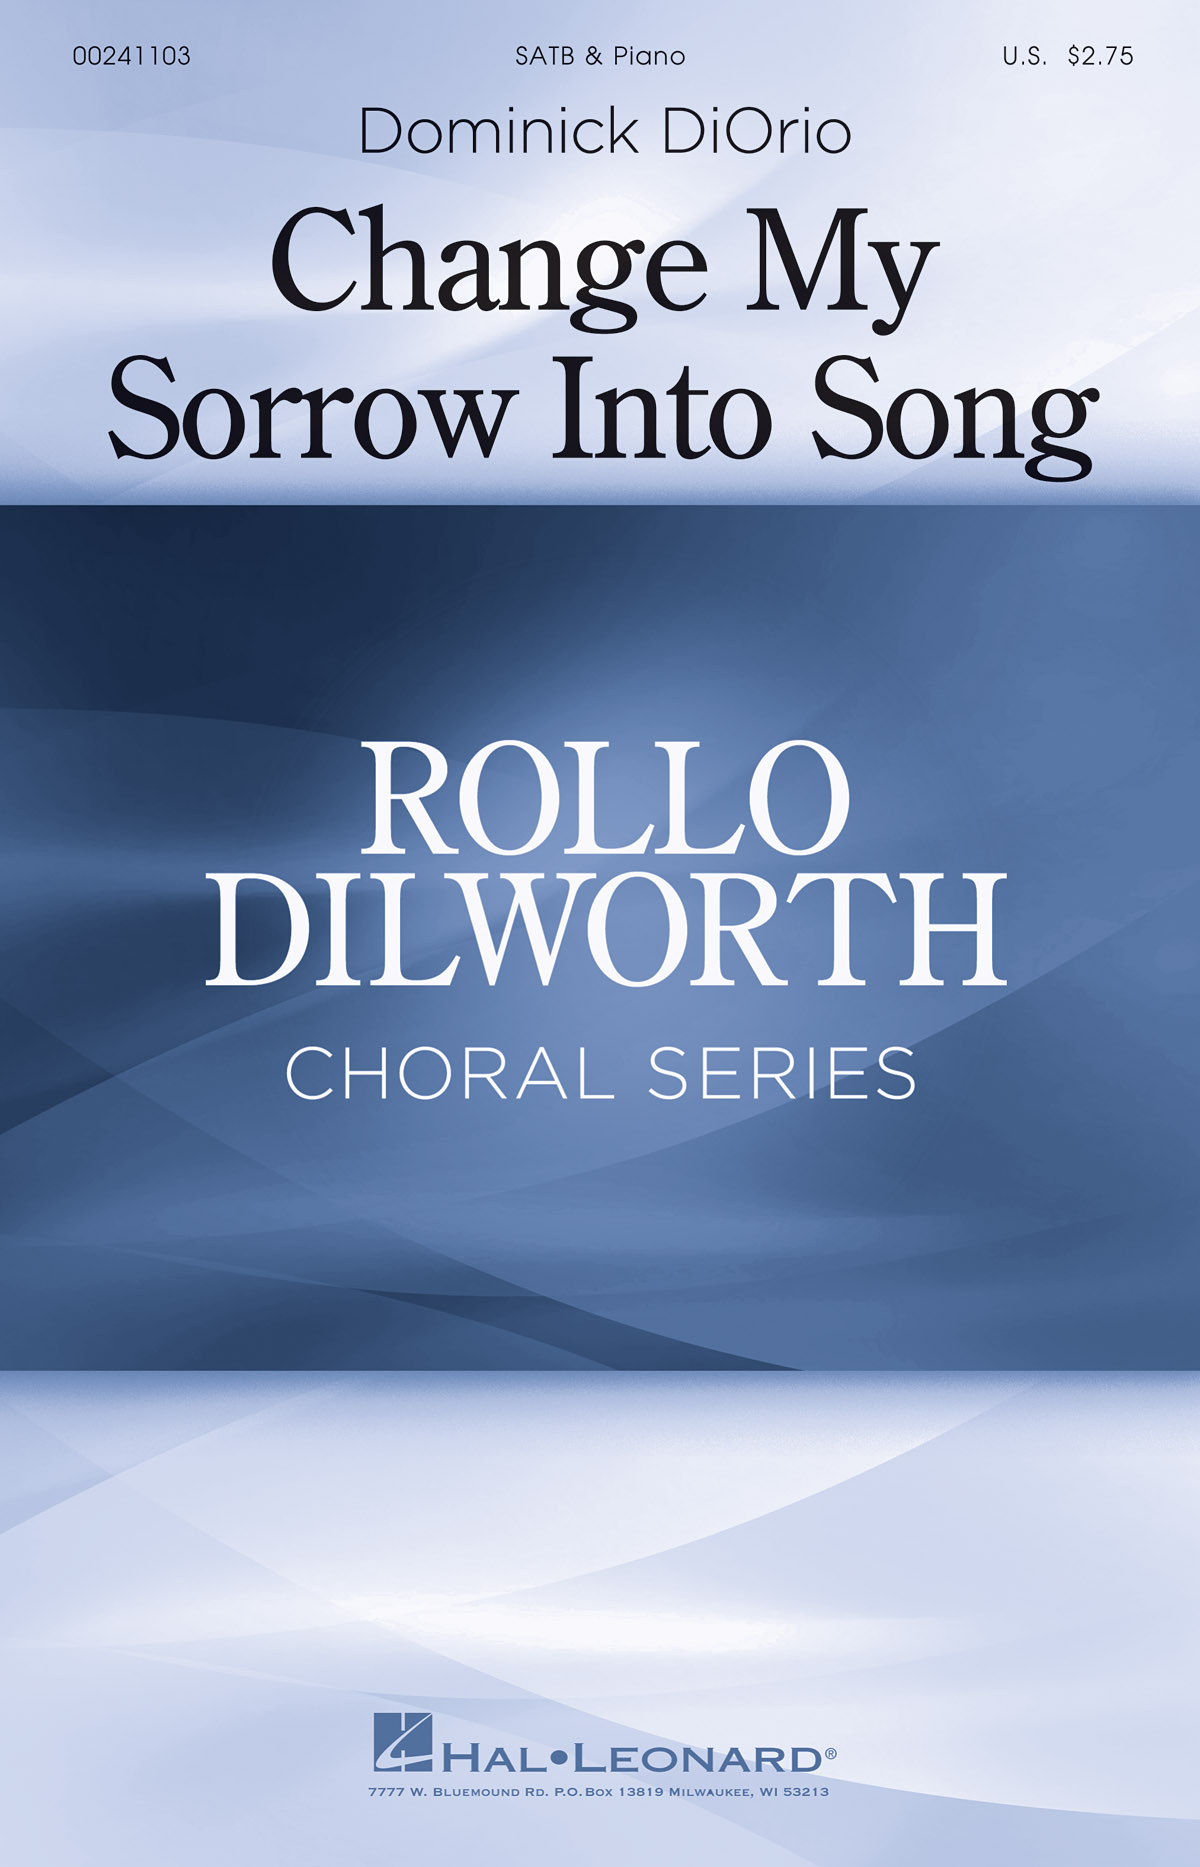 Dominick DiOrio: Change My Sorrow Into Song: Mixed Choir a Cappella: Vocal Score